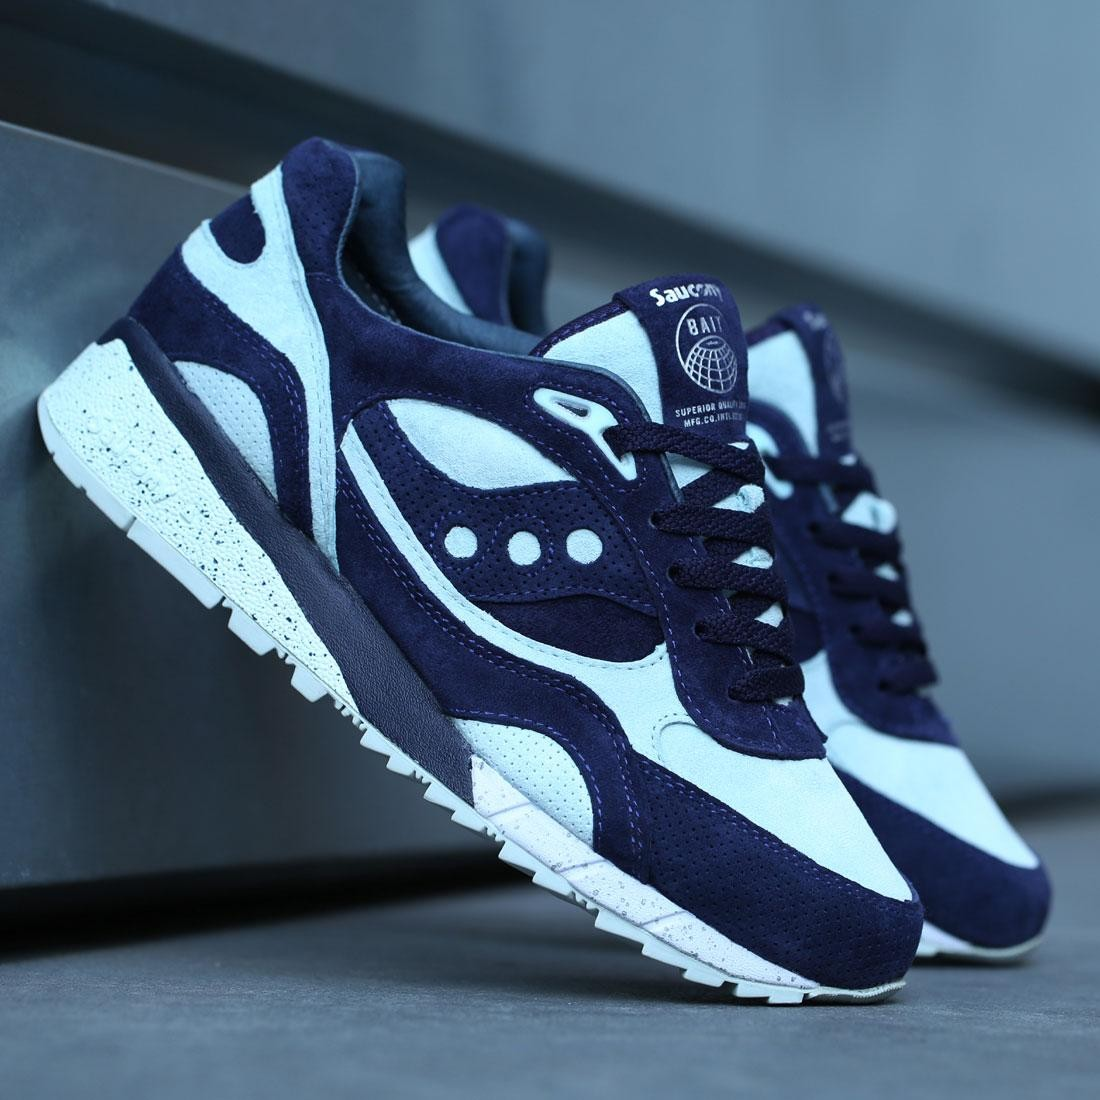 f4c6ea22019e BAIT x Saucony Shadow 6000 CruelWorld 5 - New World Water